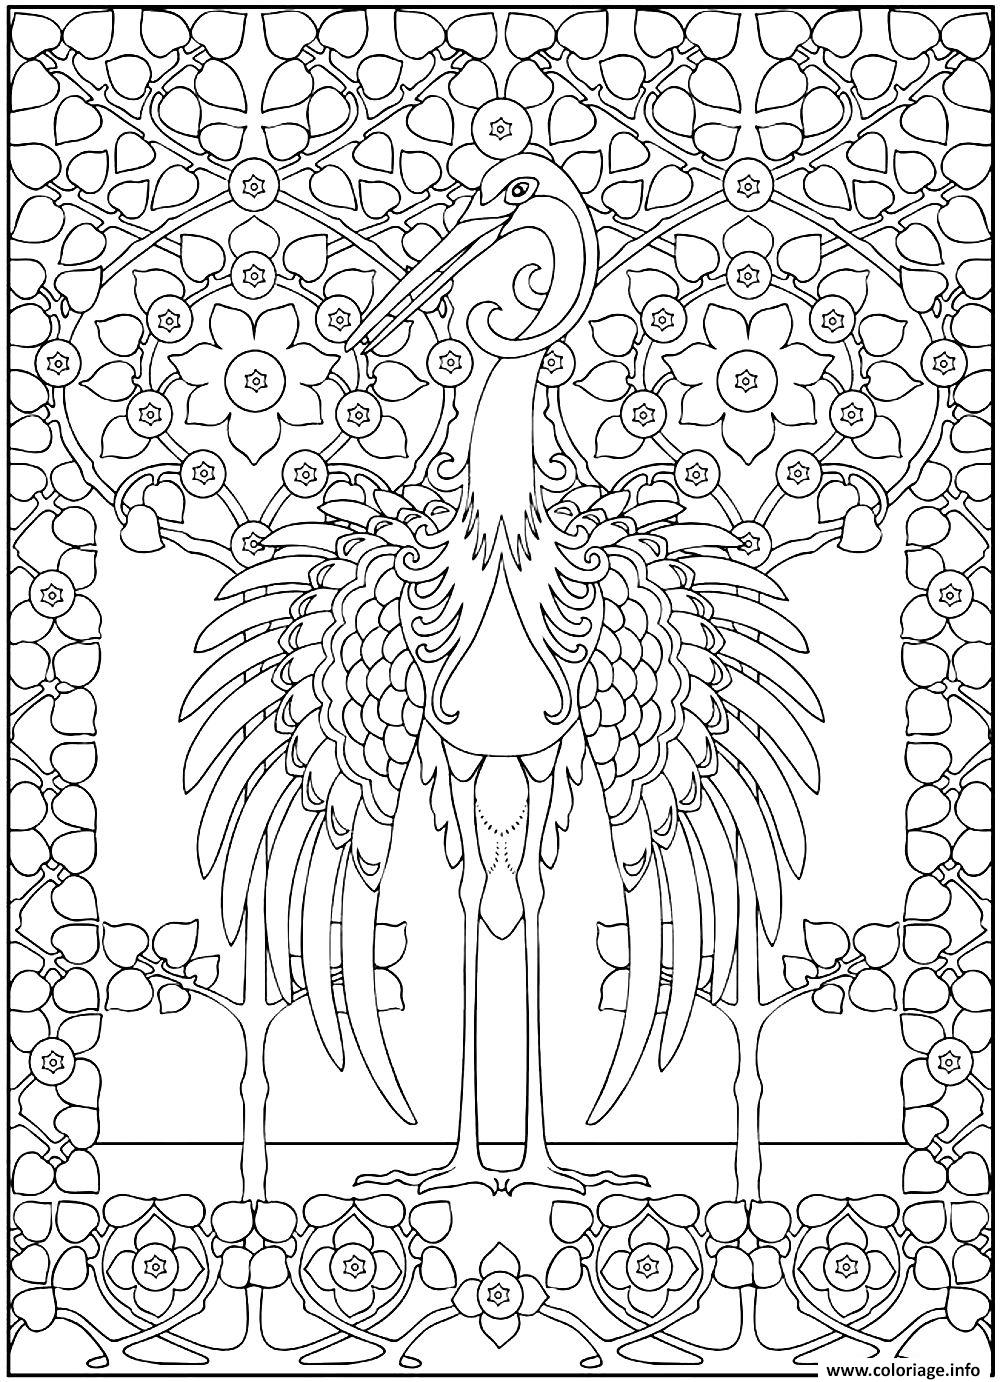 Coloriage adulte grand heron majestueux - Grand dessin a colorier ...